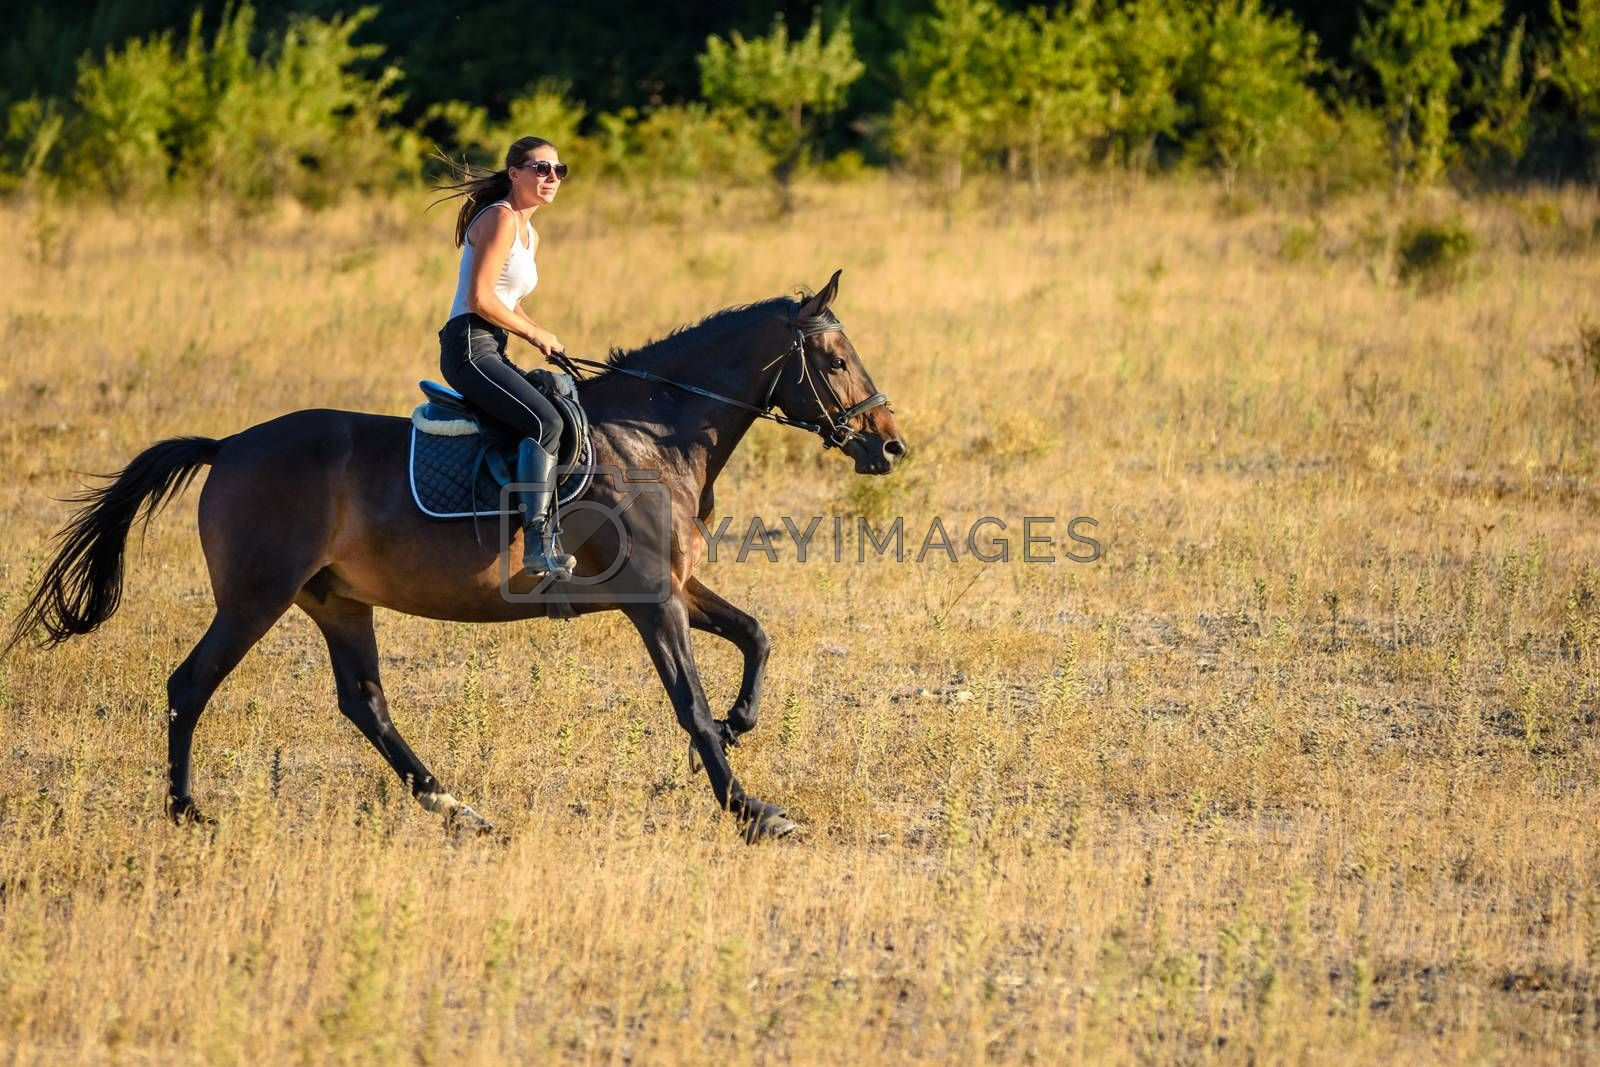 Girl rides a horse across the field on a sunny day